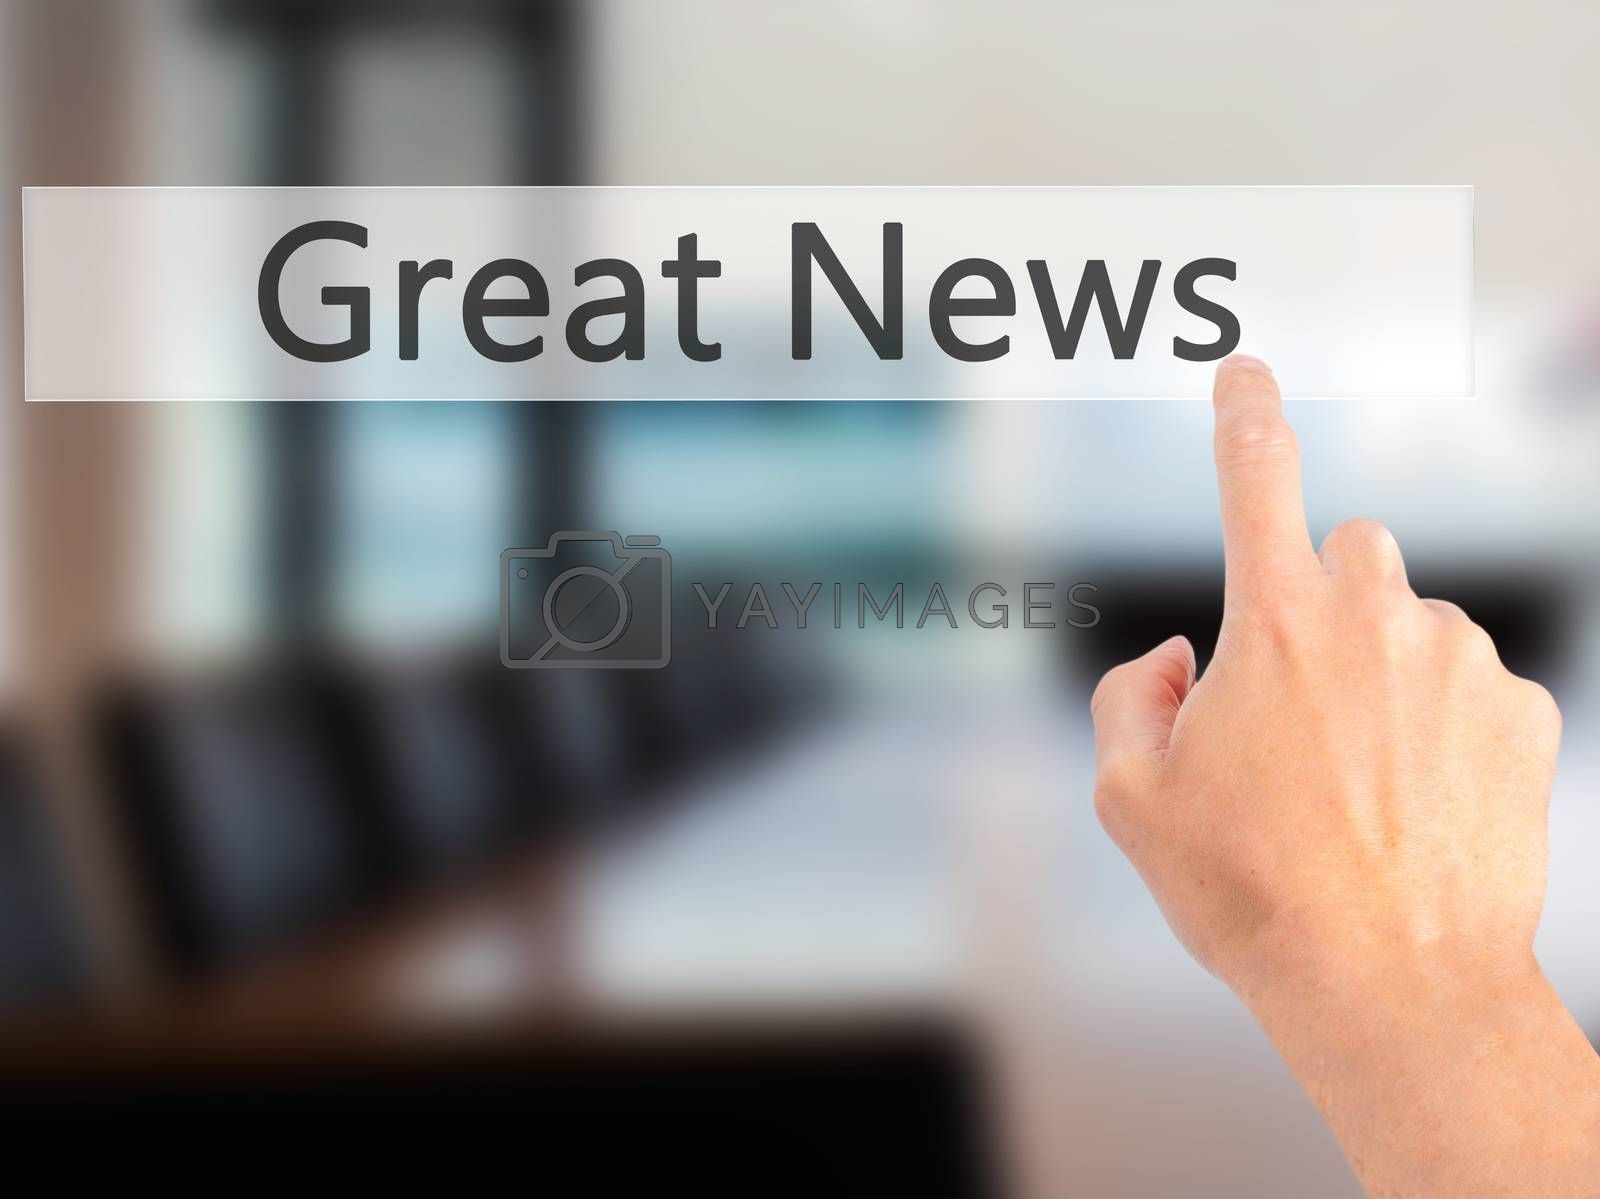 Great News - Hand pressing a button on blurred background concep by jackald